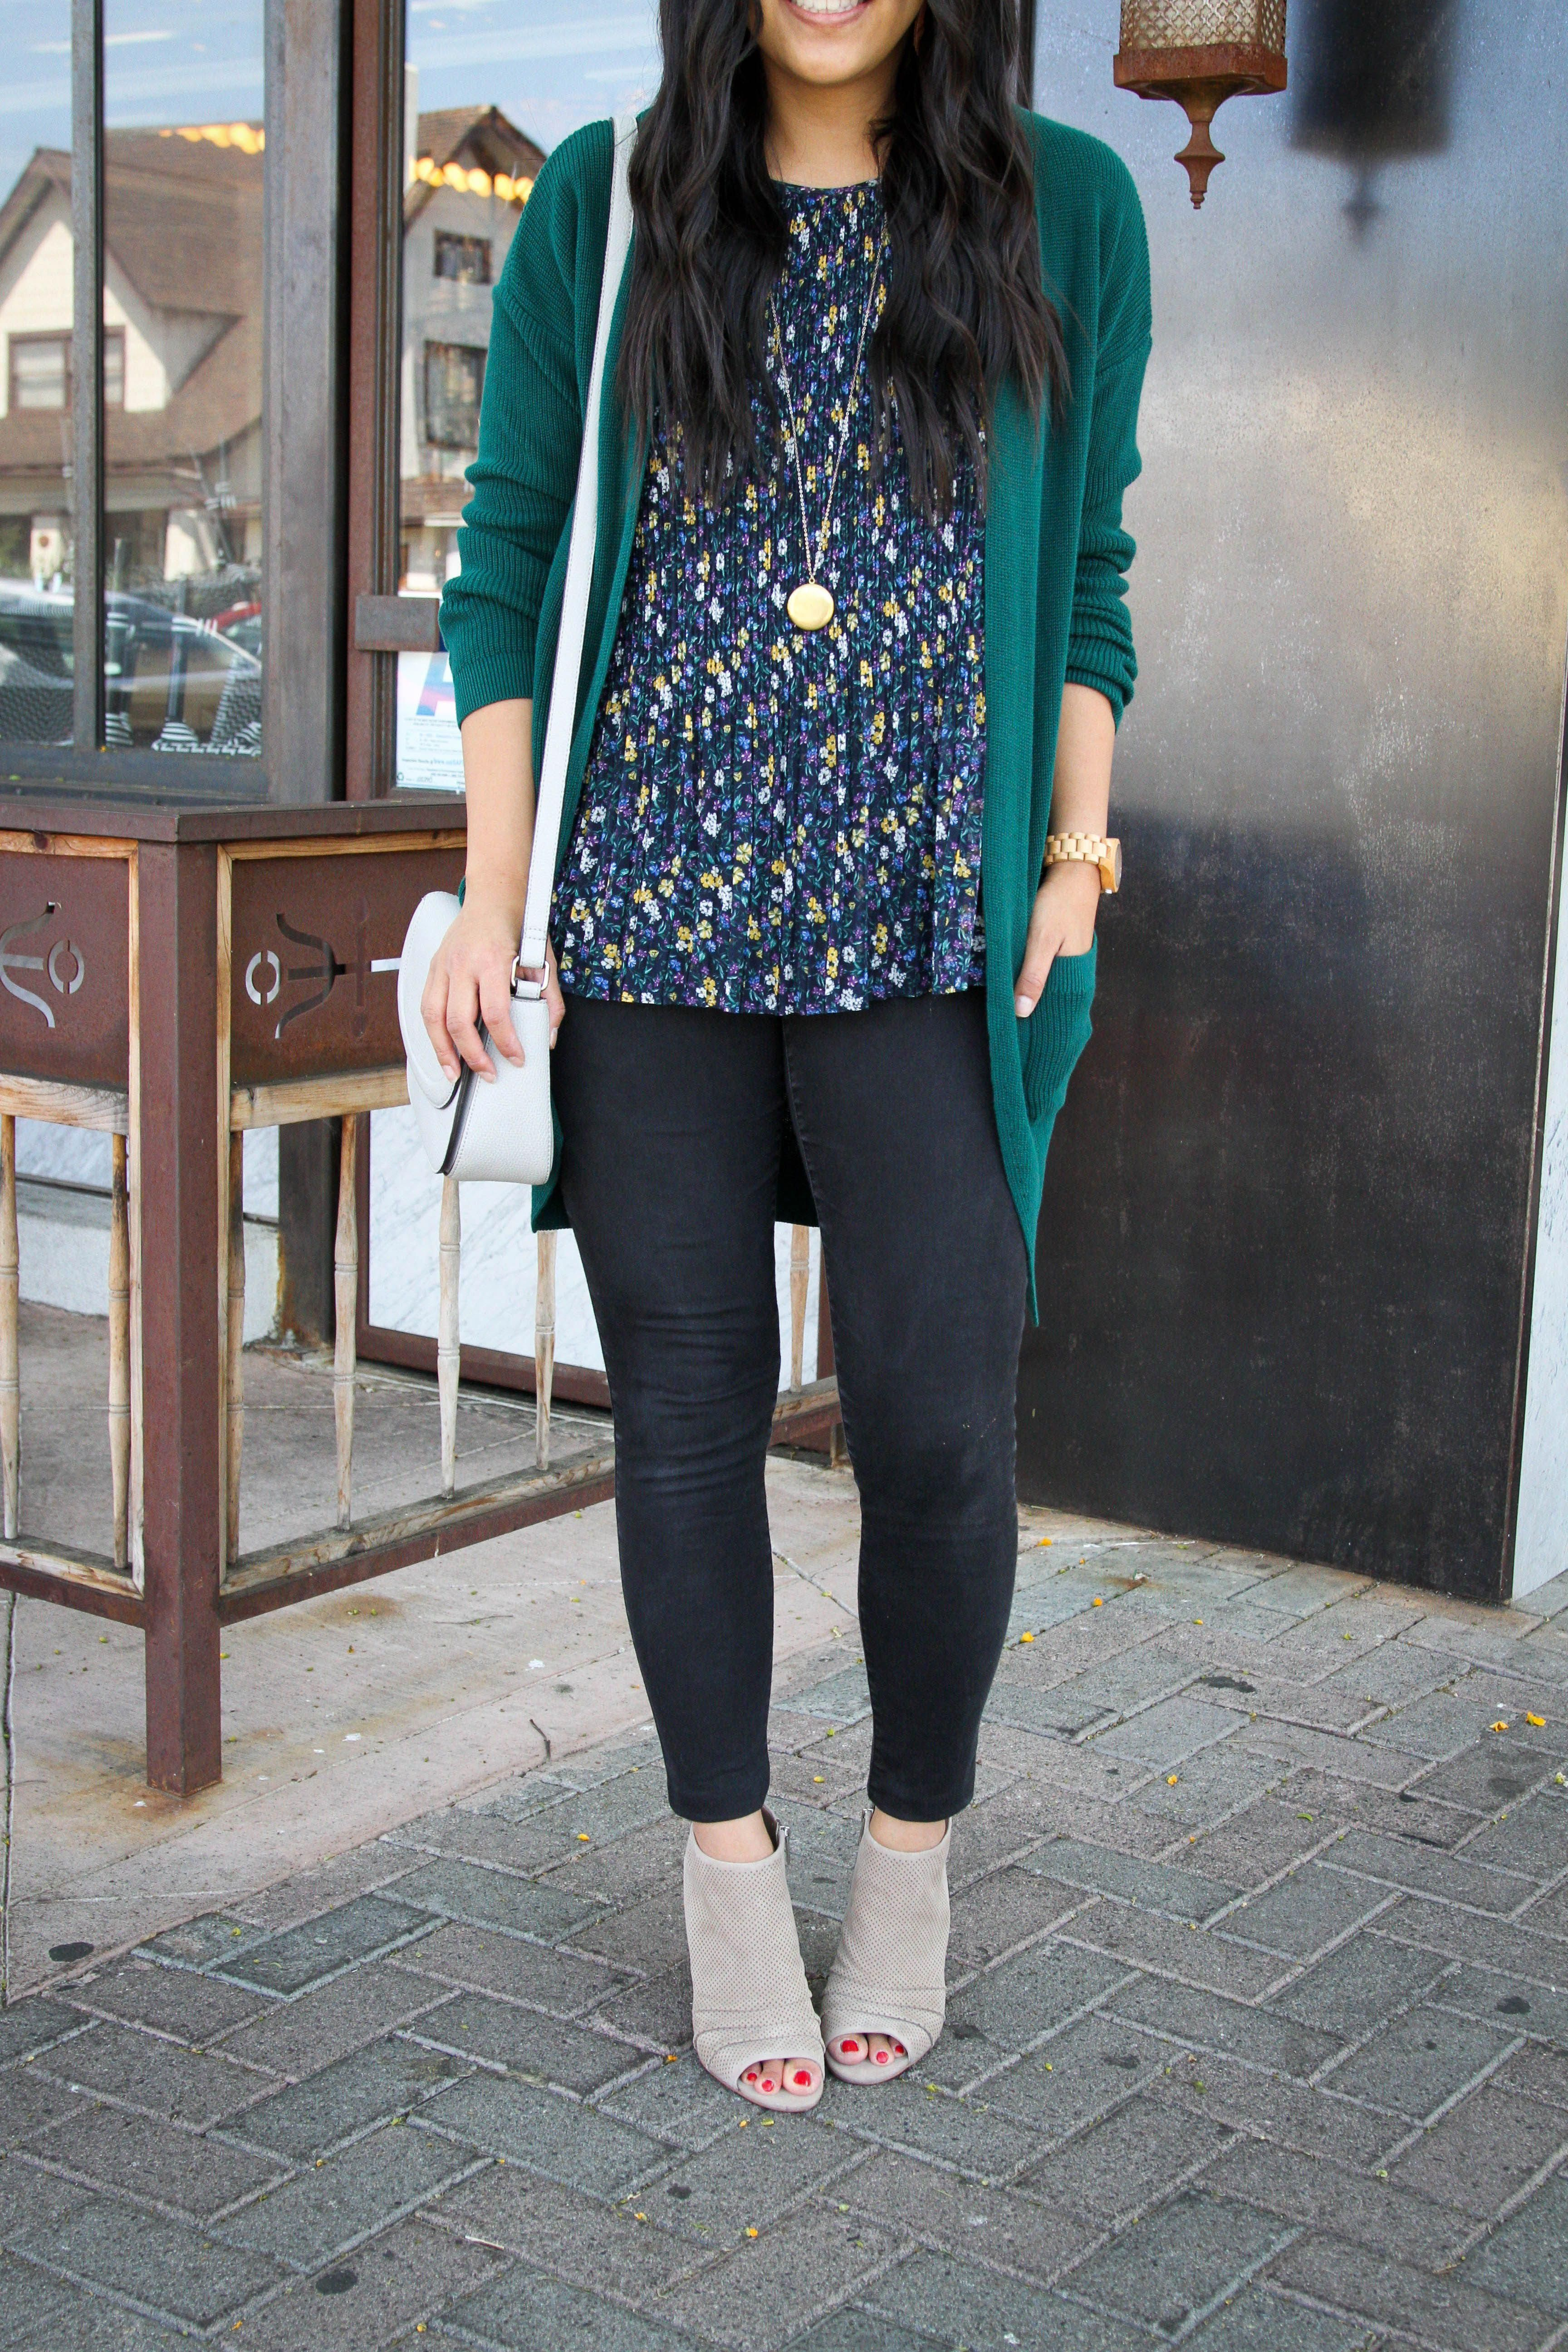 6f99cb298d1 Taupe Peep Toe Booties + Black Jeans + Floral Top + Green Cardigan   topfalloutfits